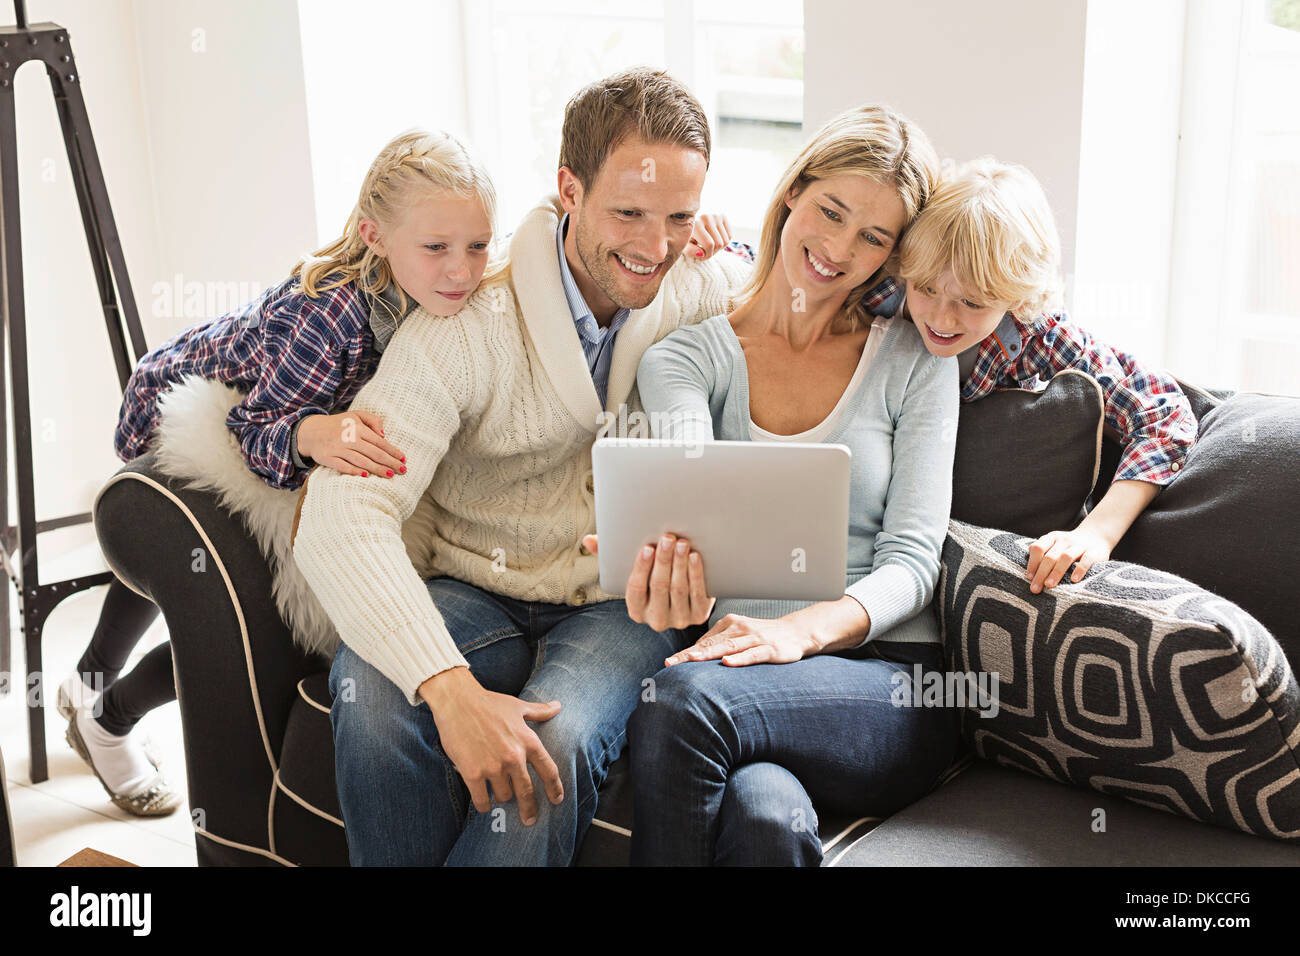 Parents with two children using digital tablet - Stock Image